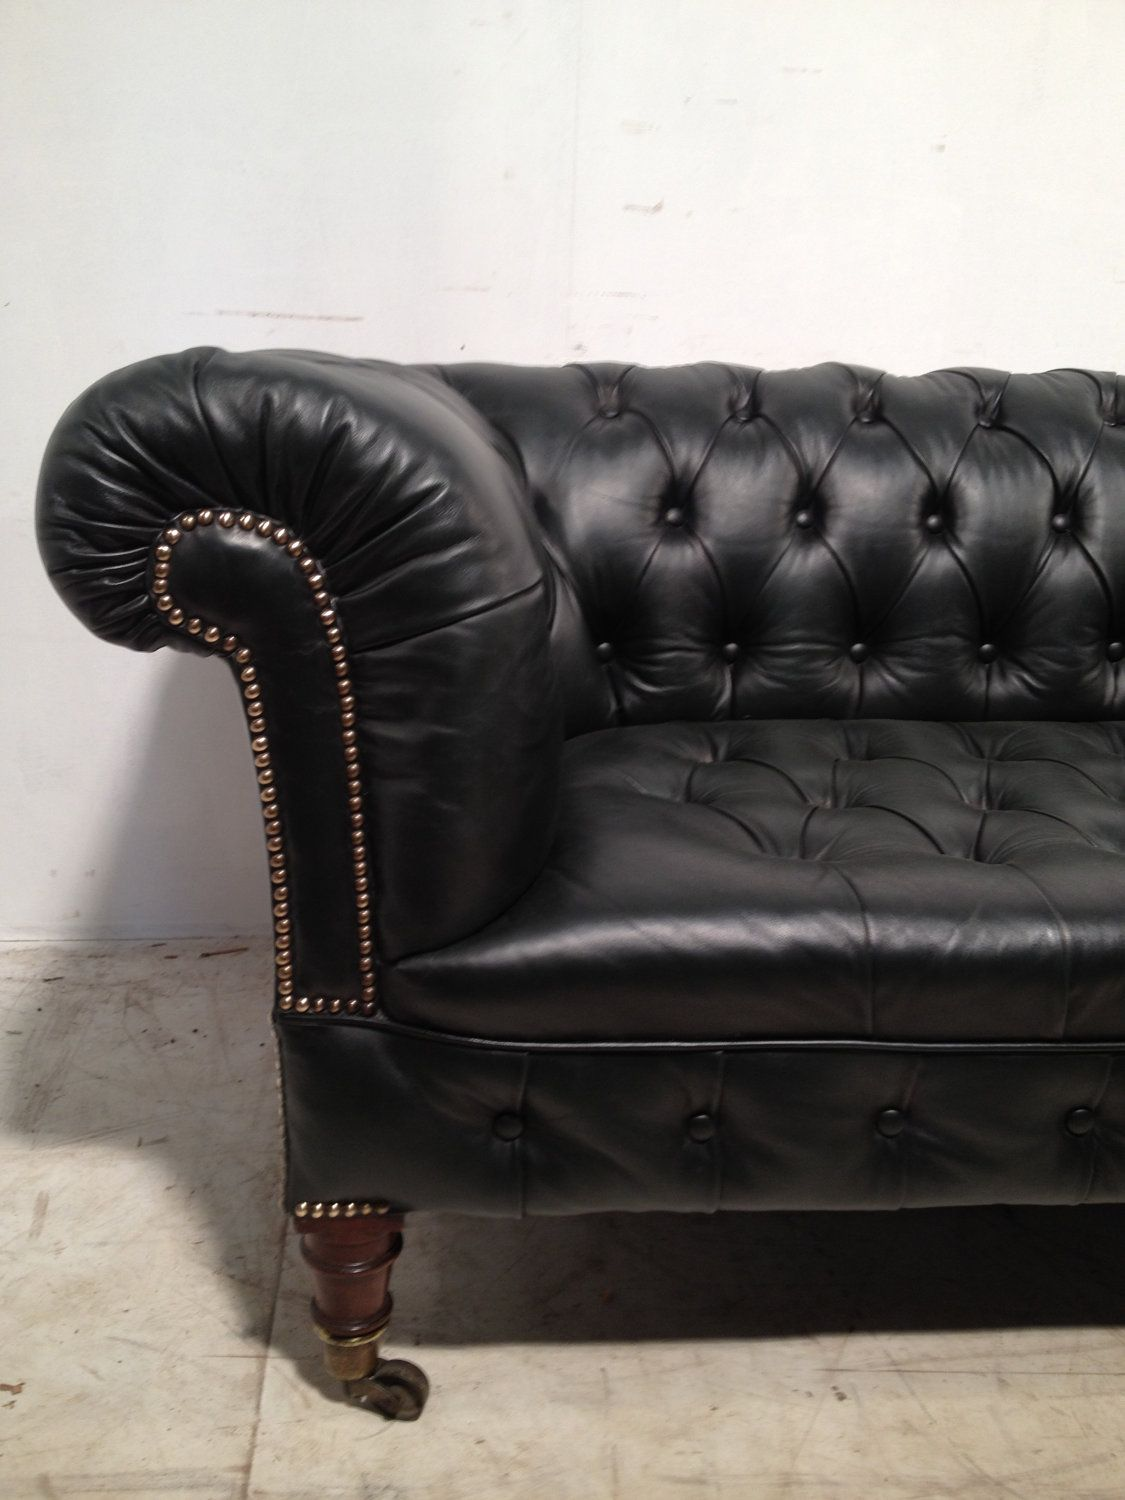 Reclining Sofa Victorian Leather Chesterfield sofa uantique green u via Etsy Chesterfield sofa Pinterest Leather chesterfield Chesterfield sofa and